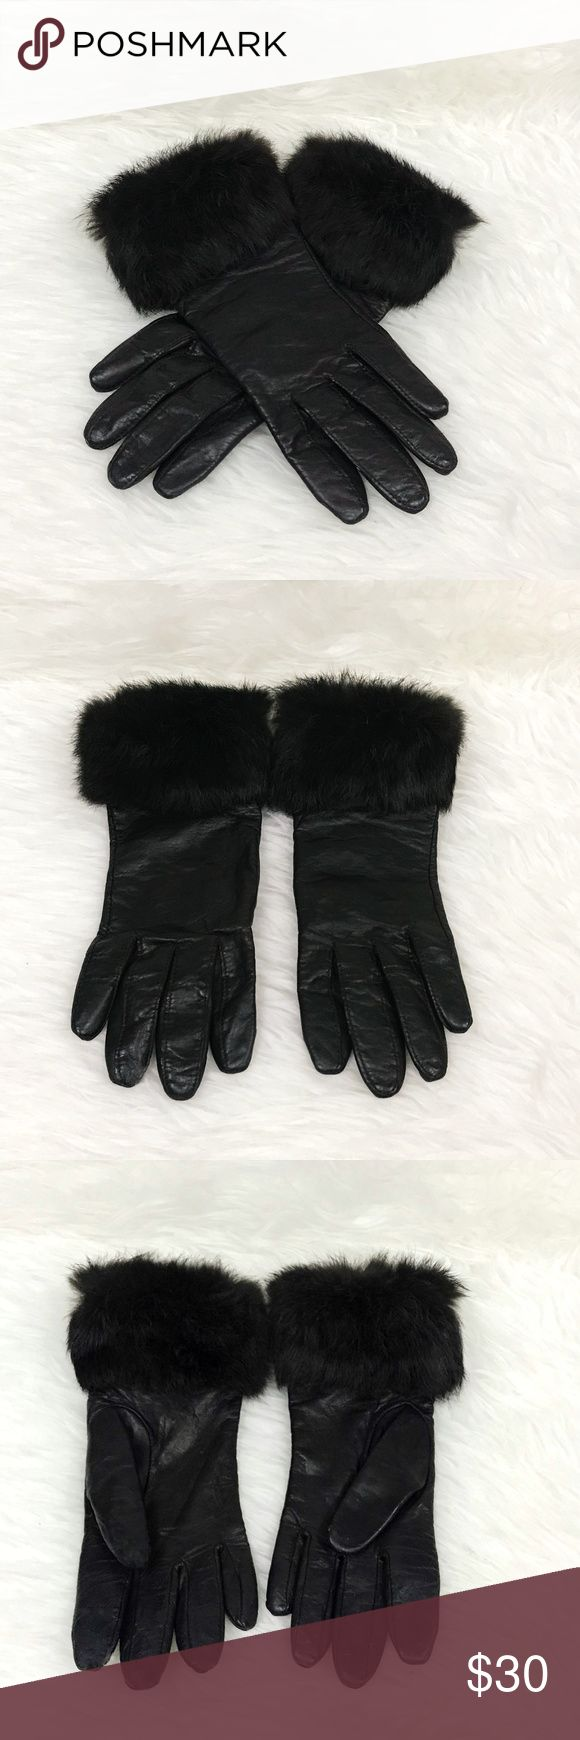 Chocolate Brown Genuine Leather + Faux Fur Gloves Chocolate Brown Genuine Leather + Faux Fur Gloves. 100% Leather Body. 100% Polyester Interior Lining. I bought these at Nordstrom to go with my UGG chocolate brown earmuffs! RN 17541. Size: 6 1/2. Condition: Gentle Use. Nordstrom Accessories Gloves & Mittens